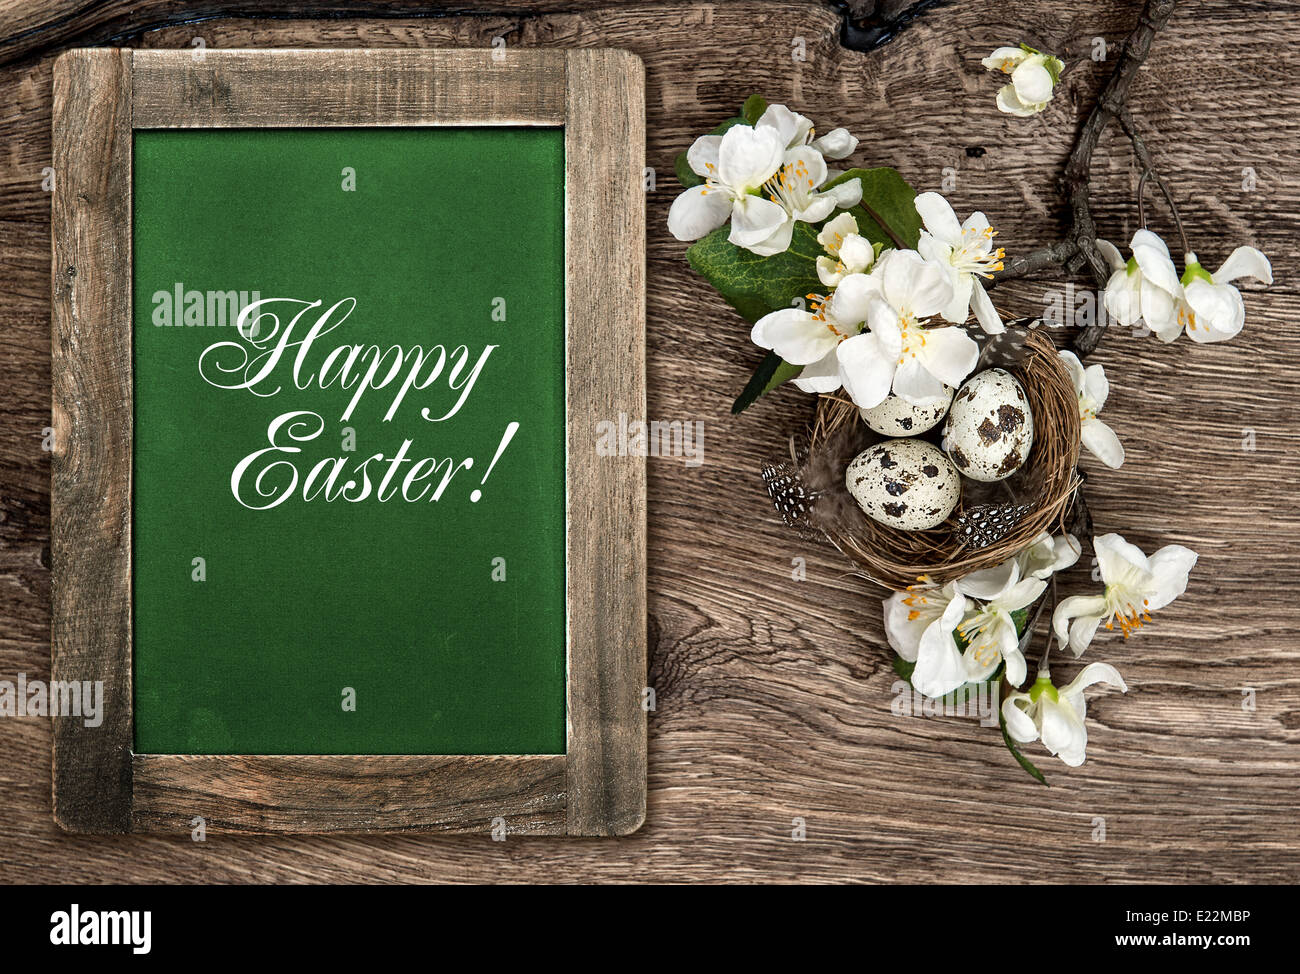 Chalkboard Flowers And Easter Nest With Eggs On Rustic Wooden Stock